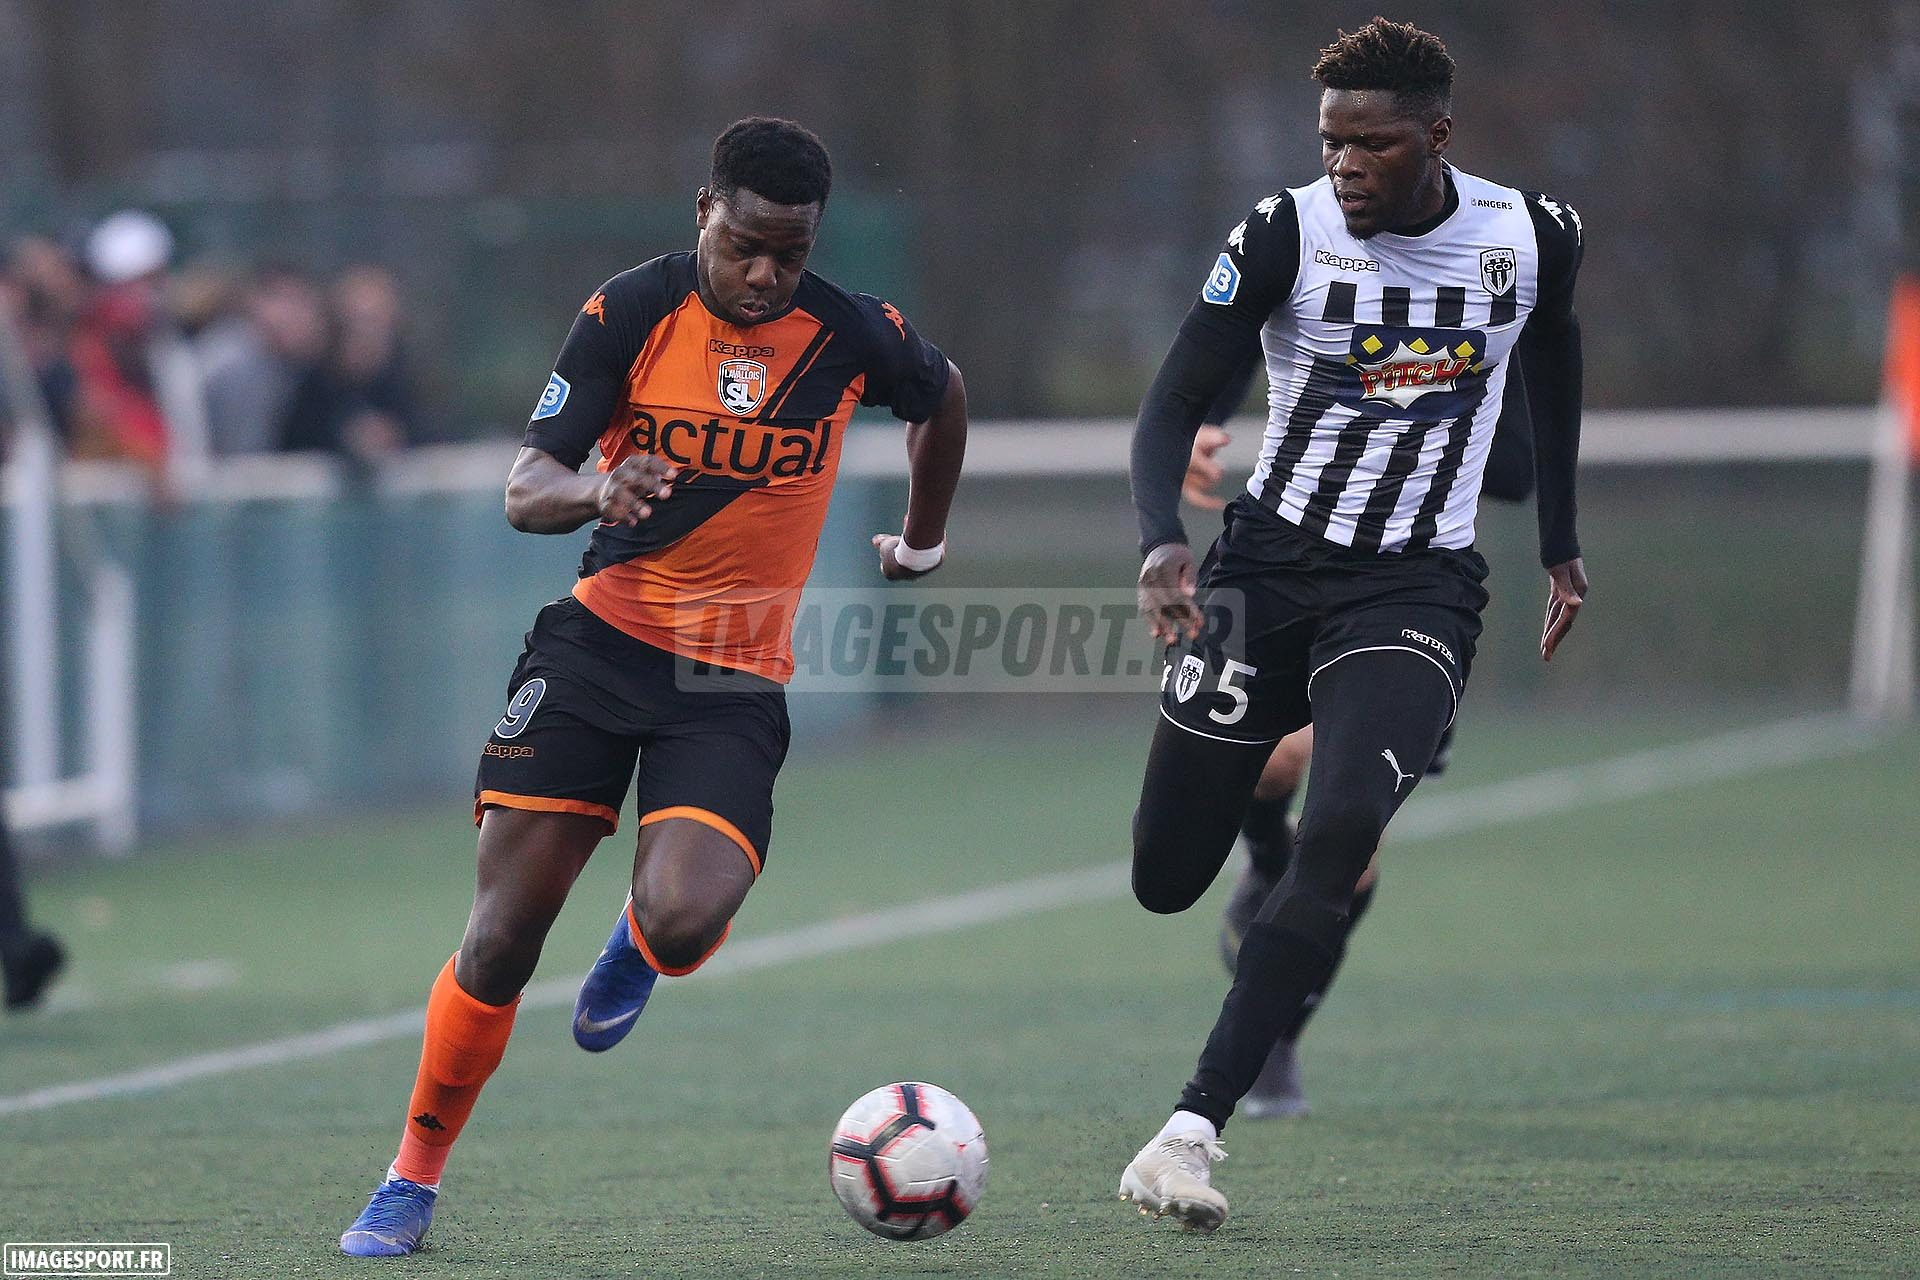 national3-laval-angers-football_14